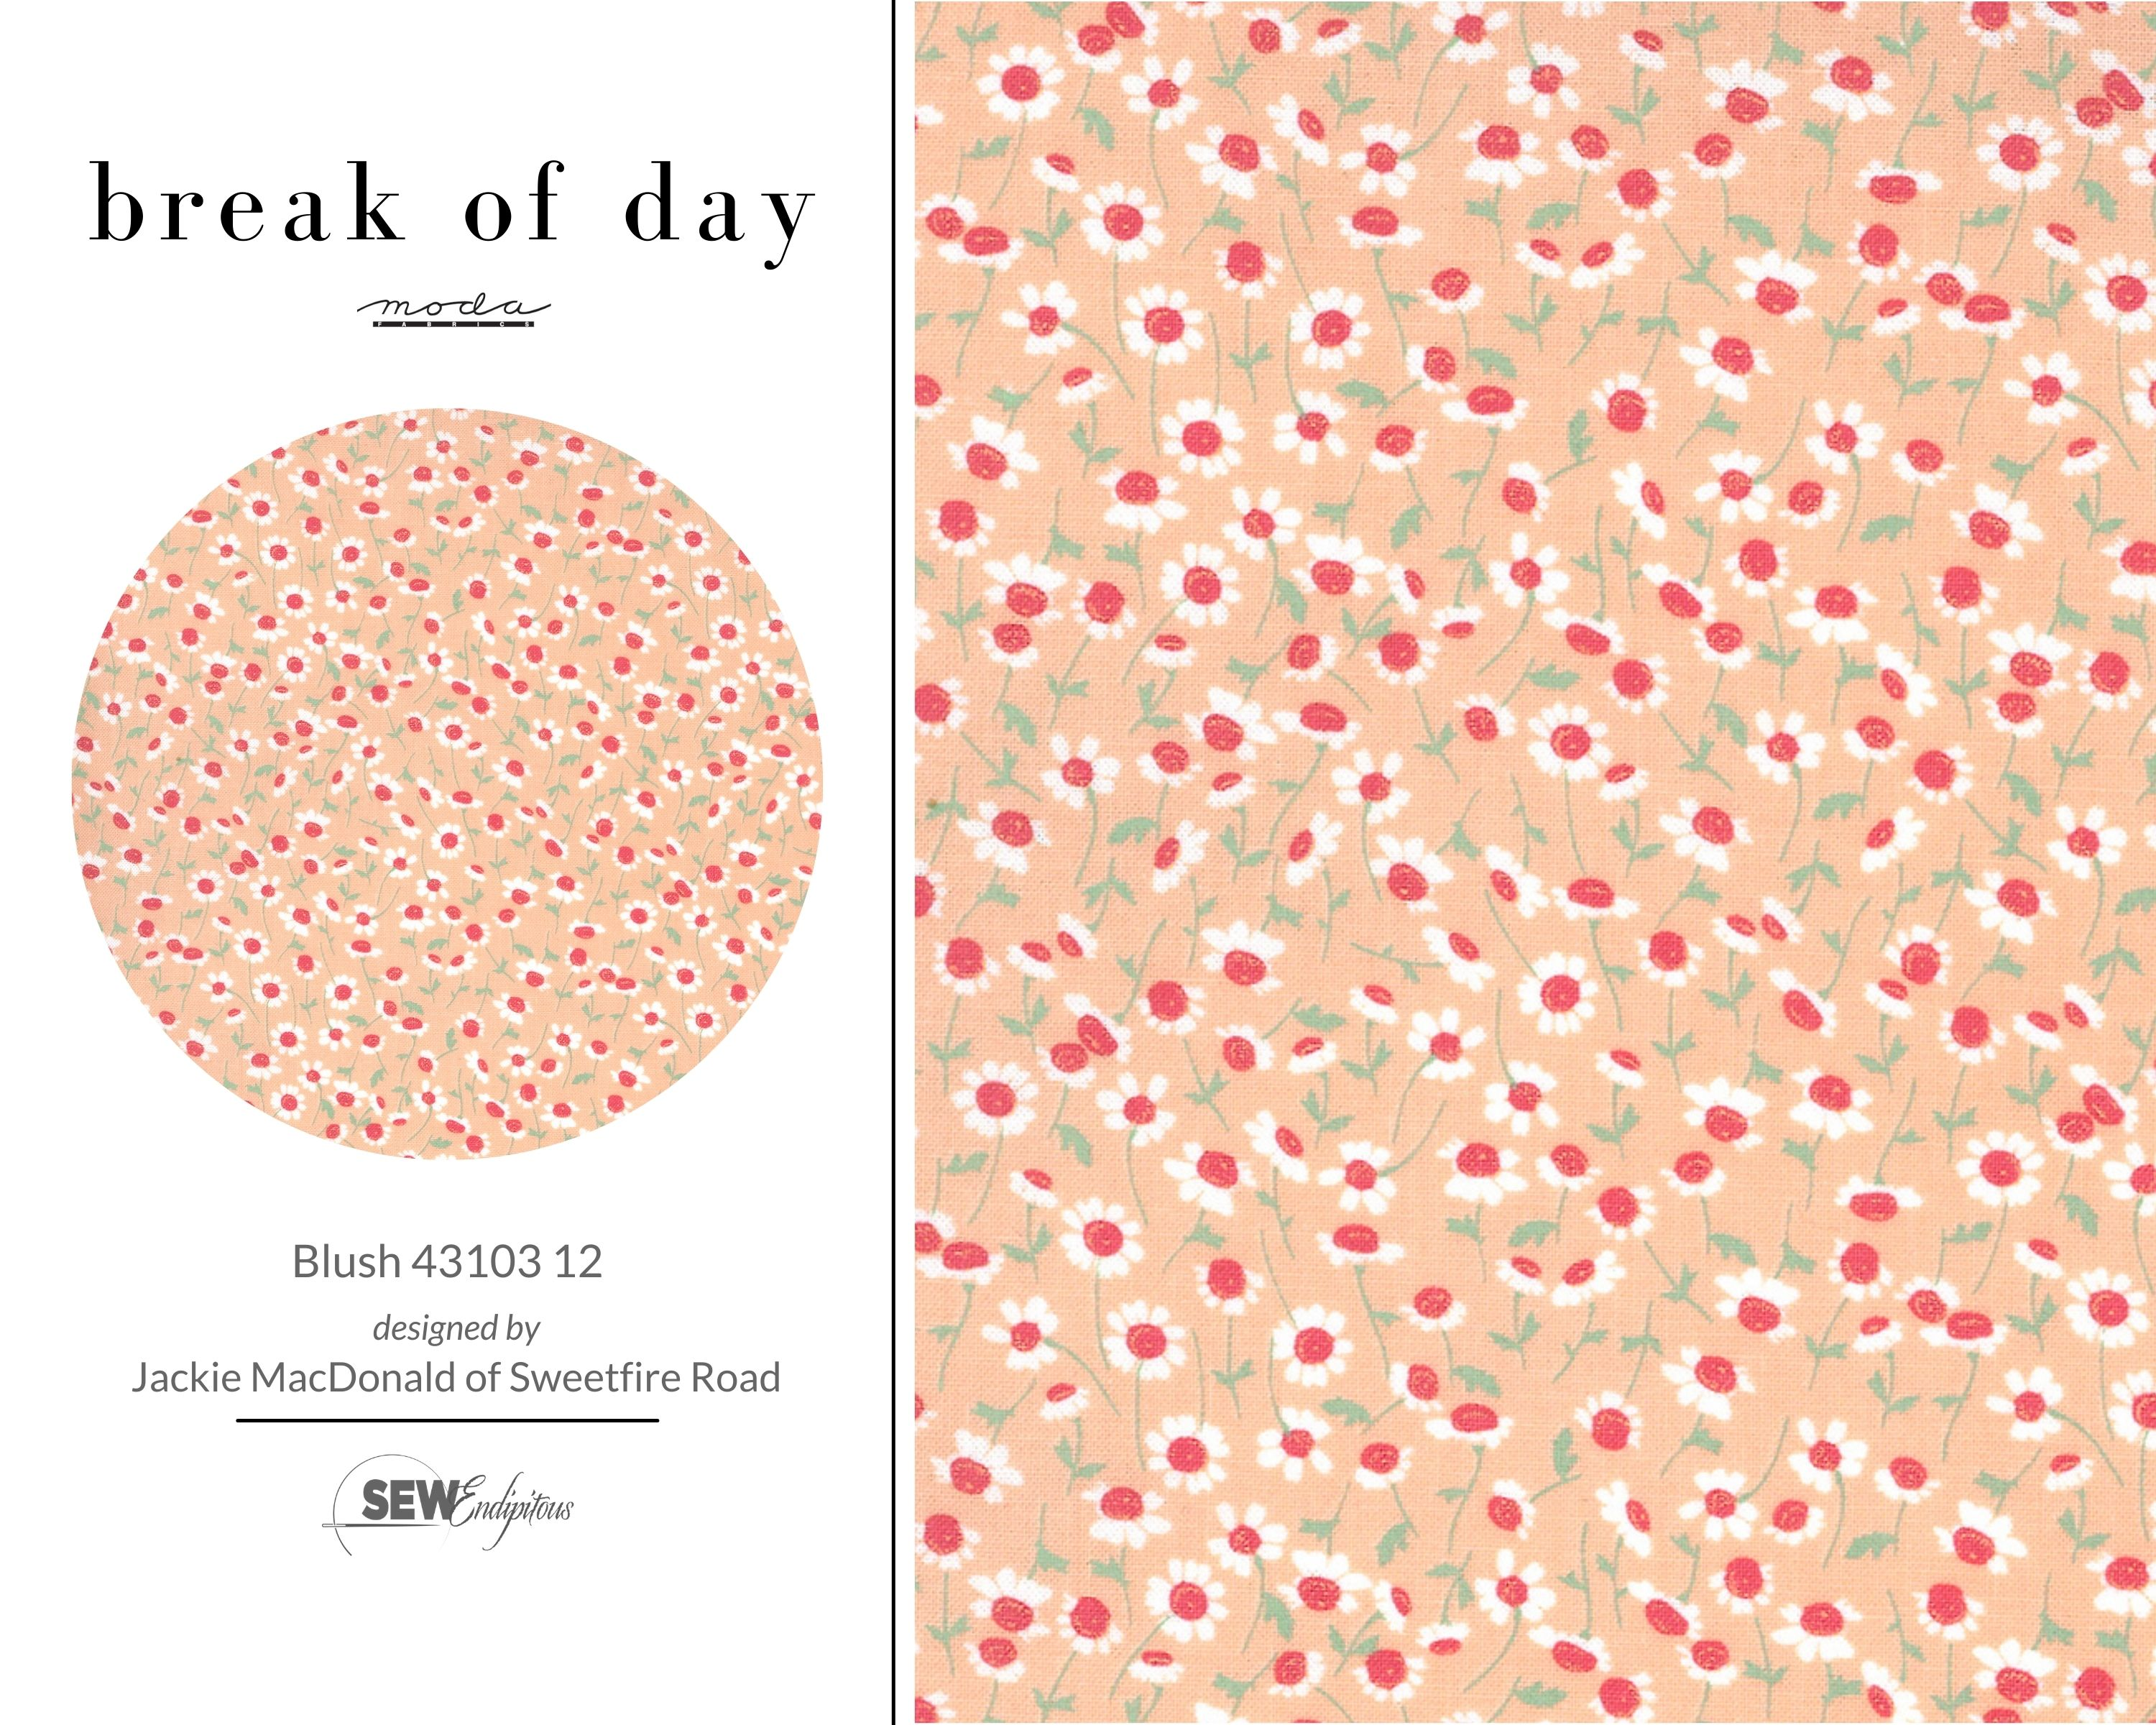 Break Of Day - Blush 43103 12